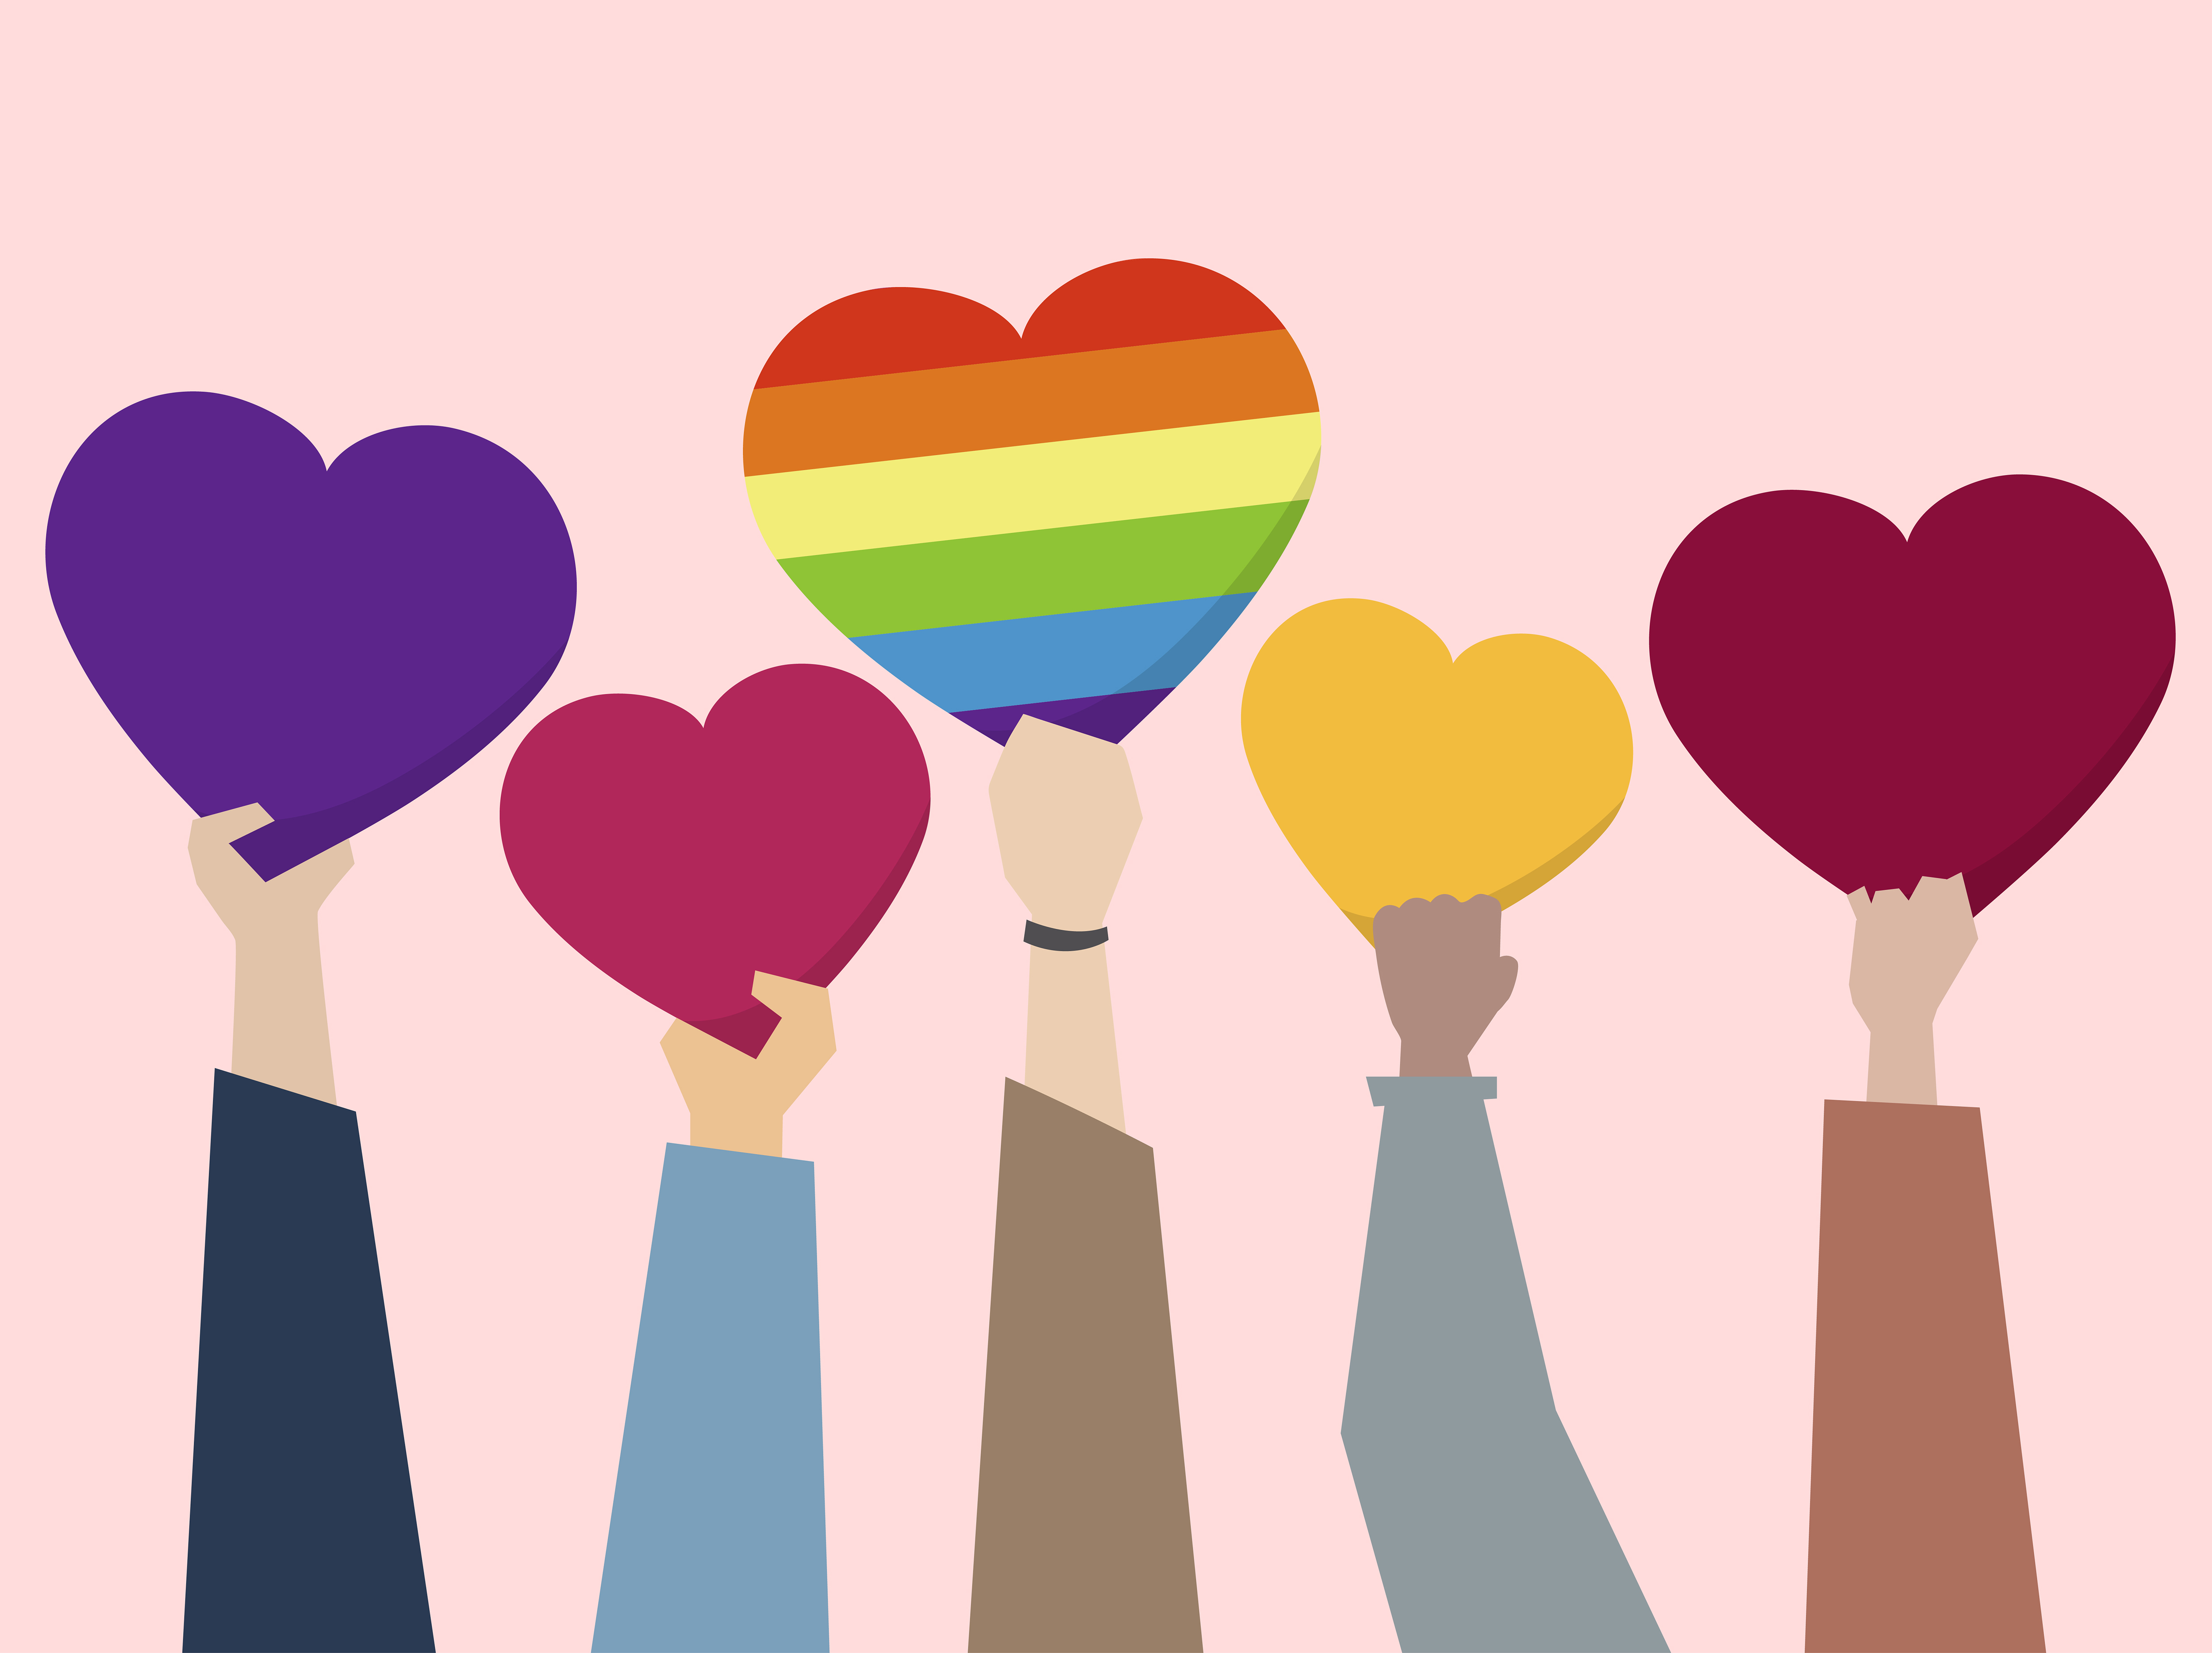 People holding up hearts